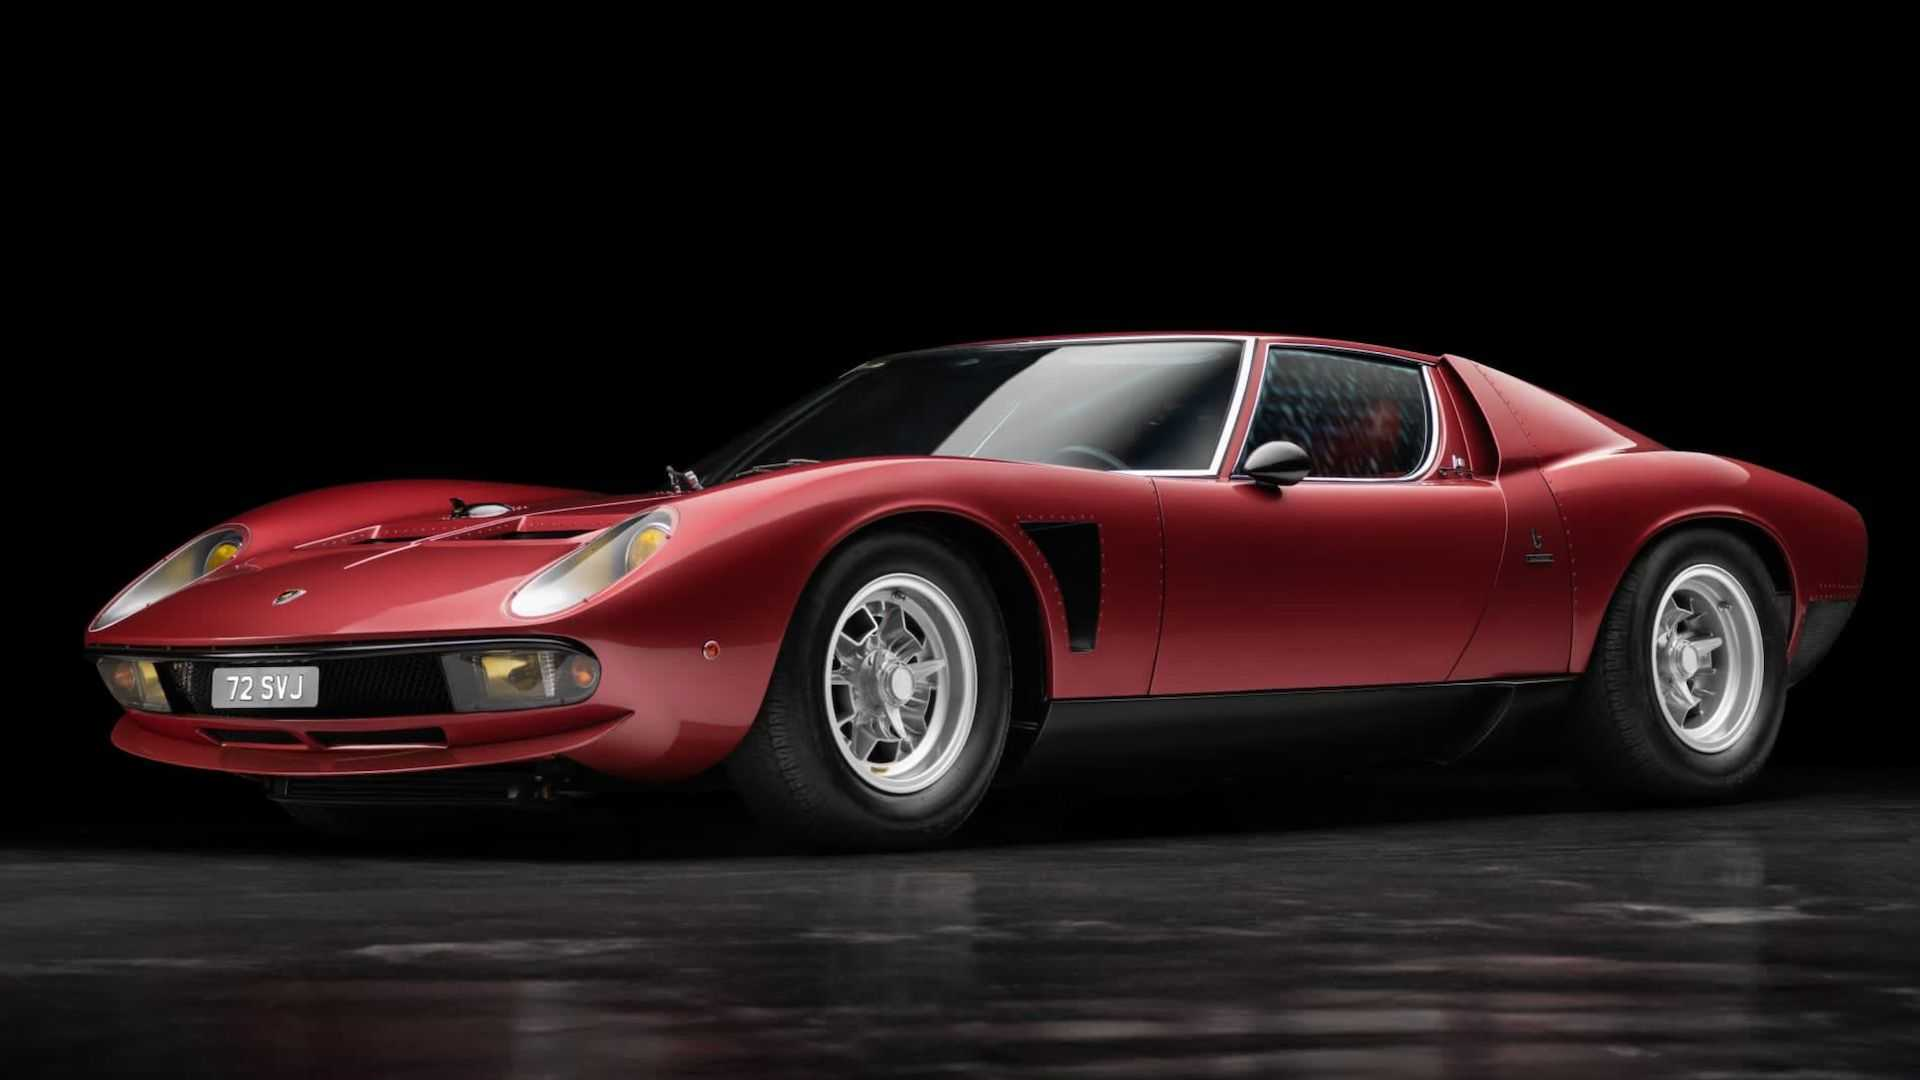 The iconic Lamborghini Miura is widely considered a distant ancestor of the modern Aventador. The Italian sports car maker built 764 such vehicles in the 1960s and 70s, out of which only three were outfitted to the SVJ spec. This is one of them.